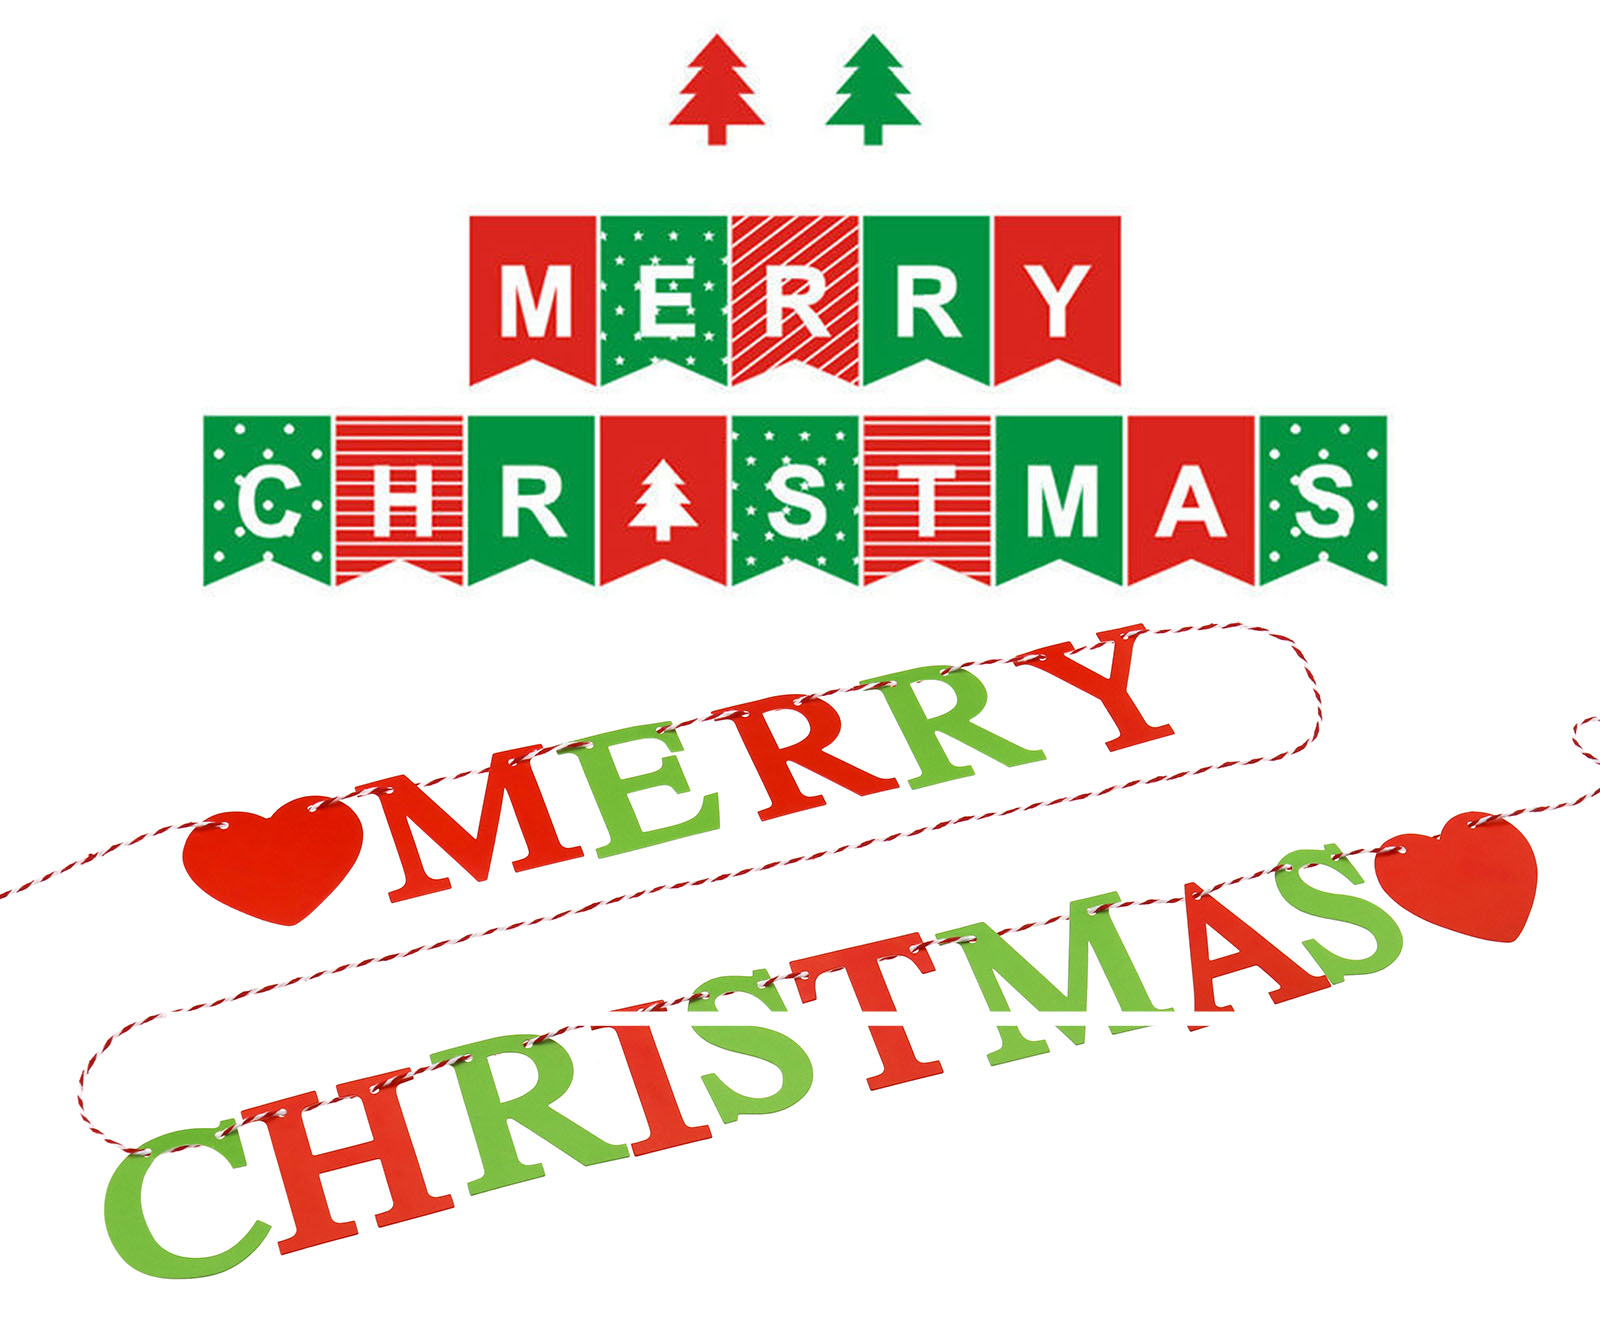 merry christmas garland xmas sign red hearts bunting banner home decoration